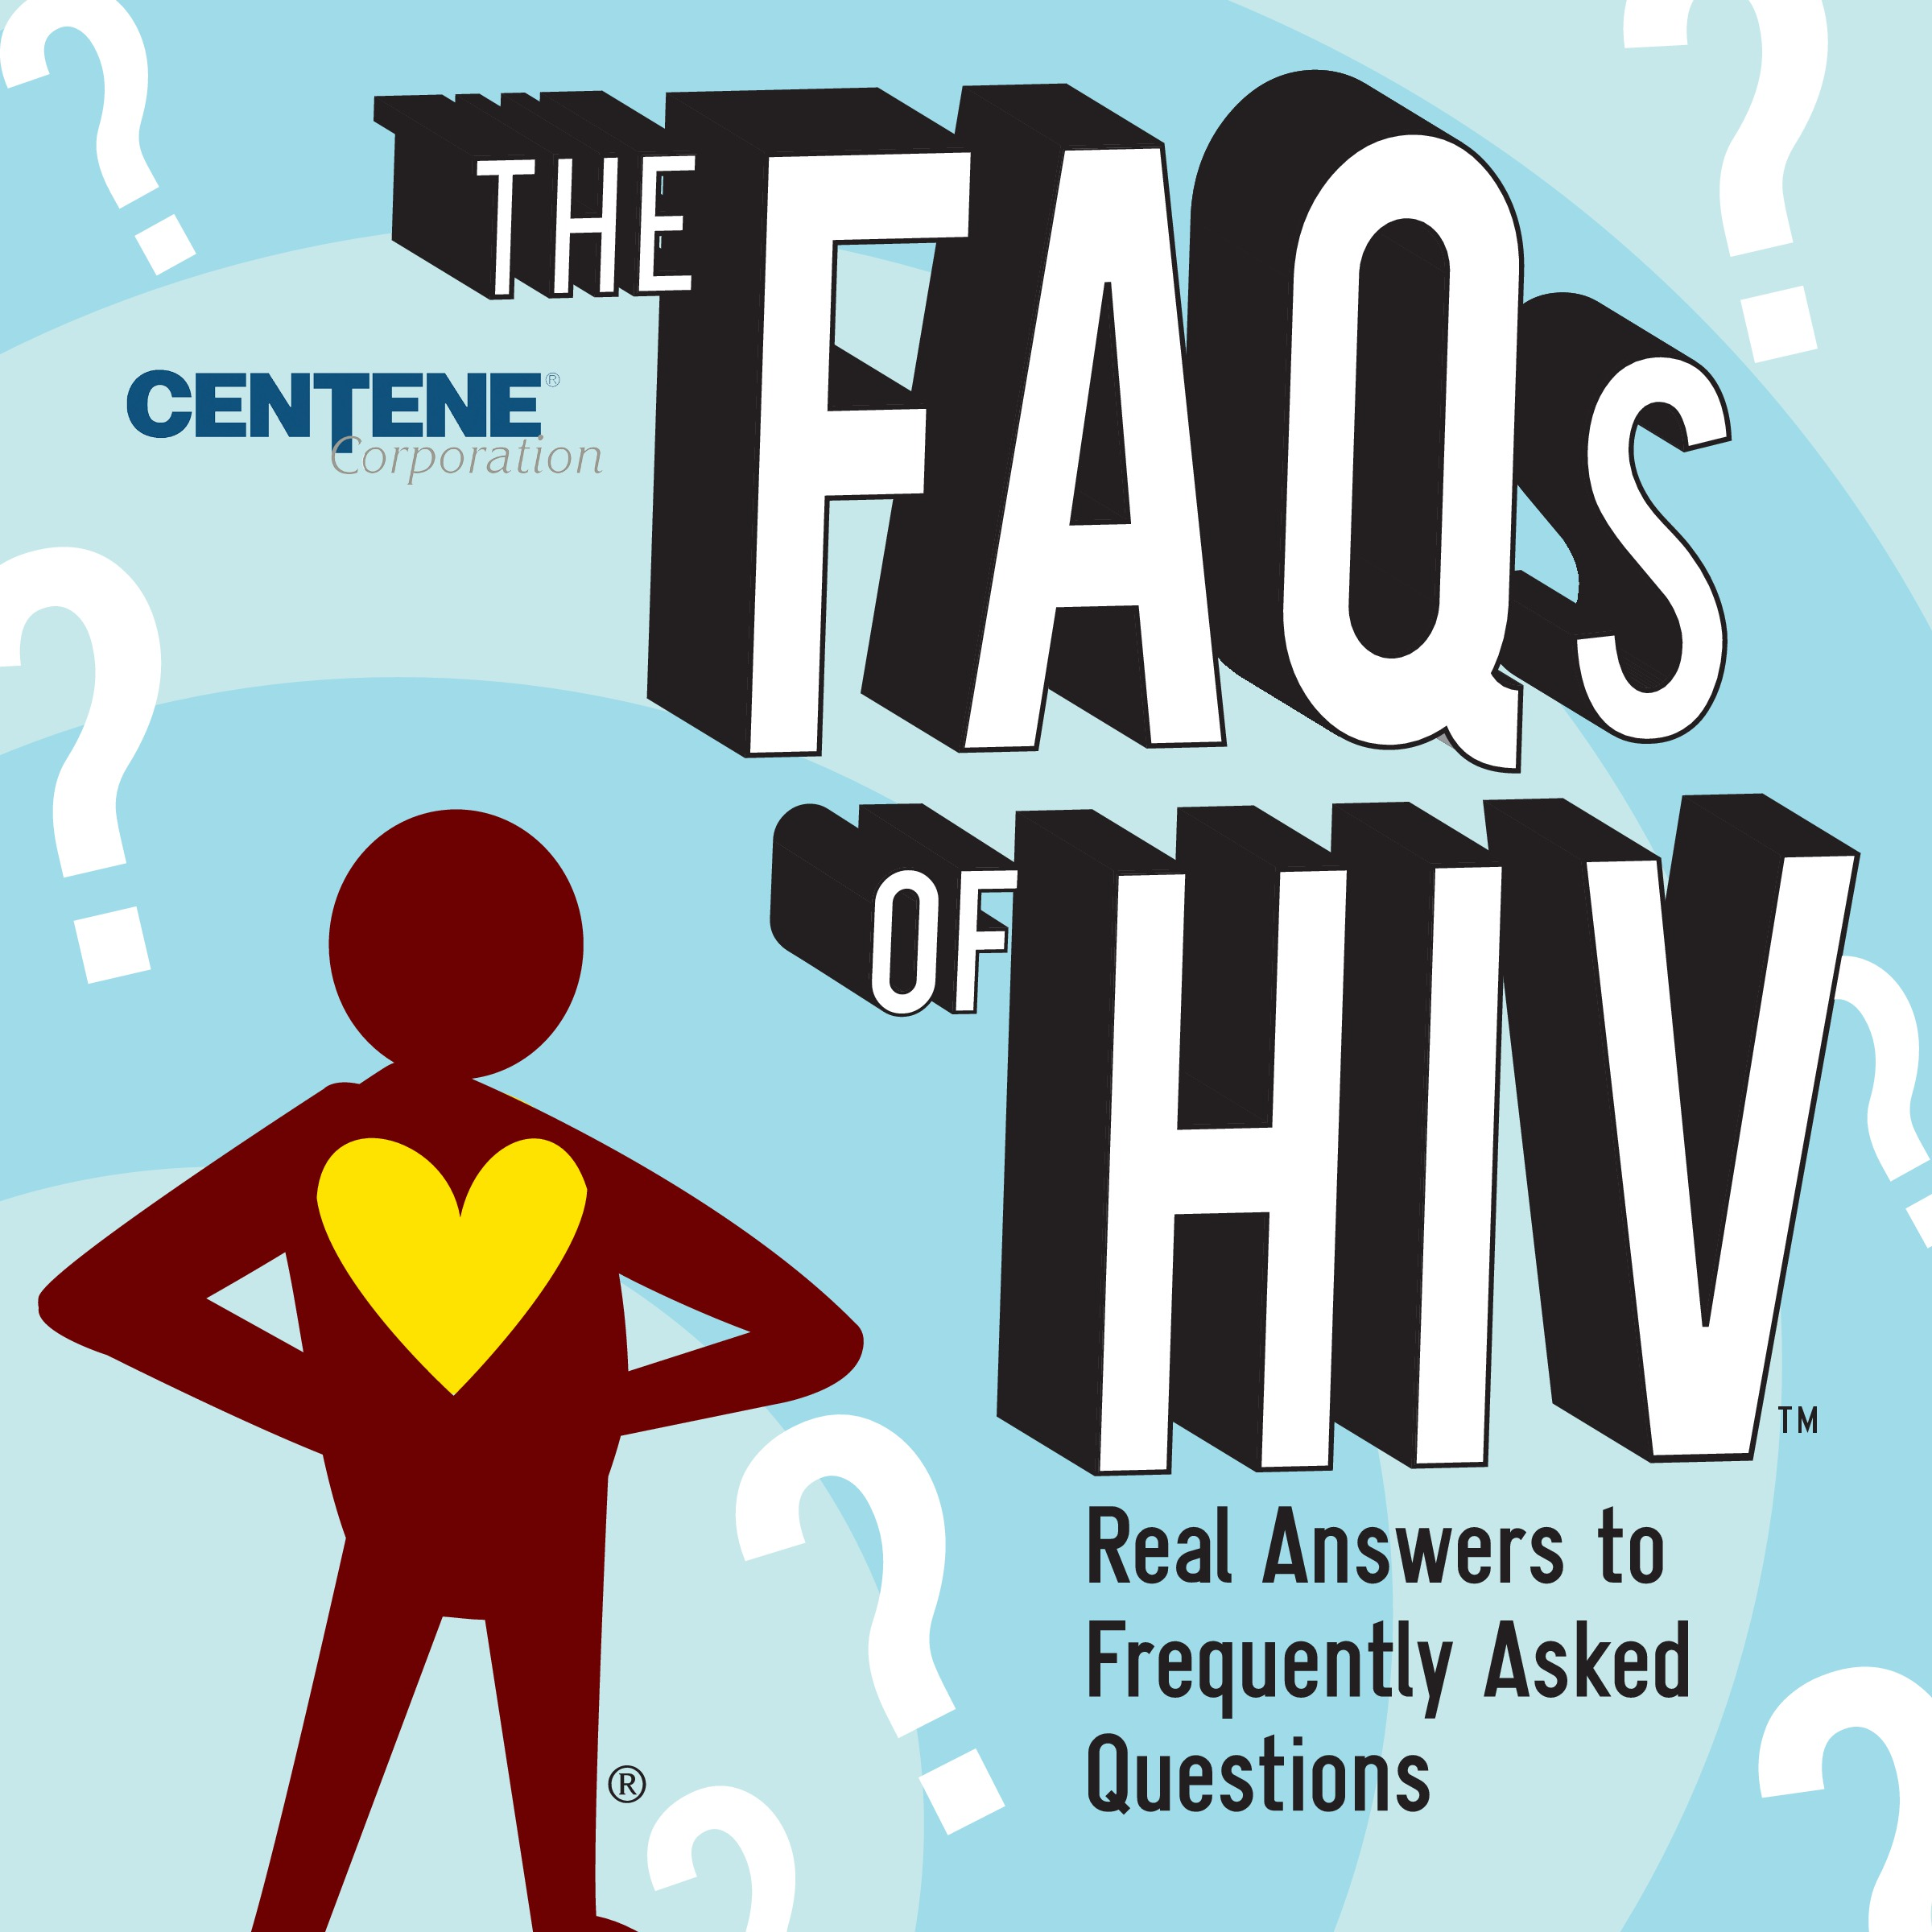 THE FAQs OF HIV